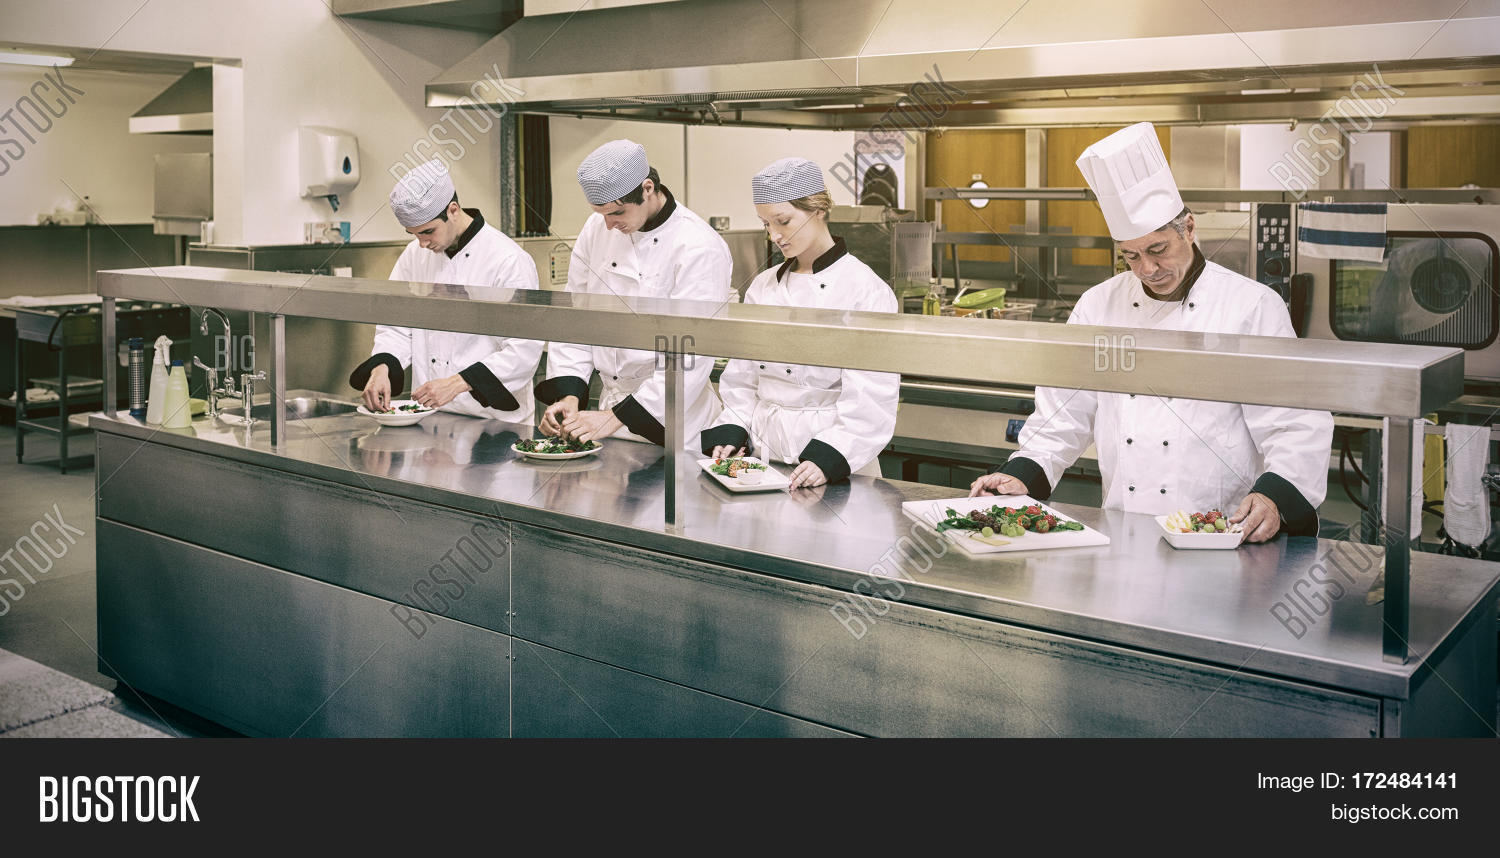 Focused chefs preparing plate in professioanl kitchen